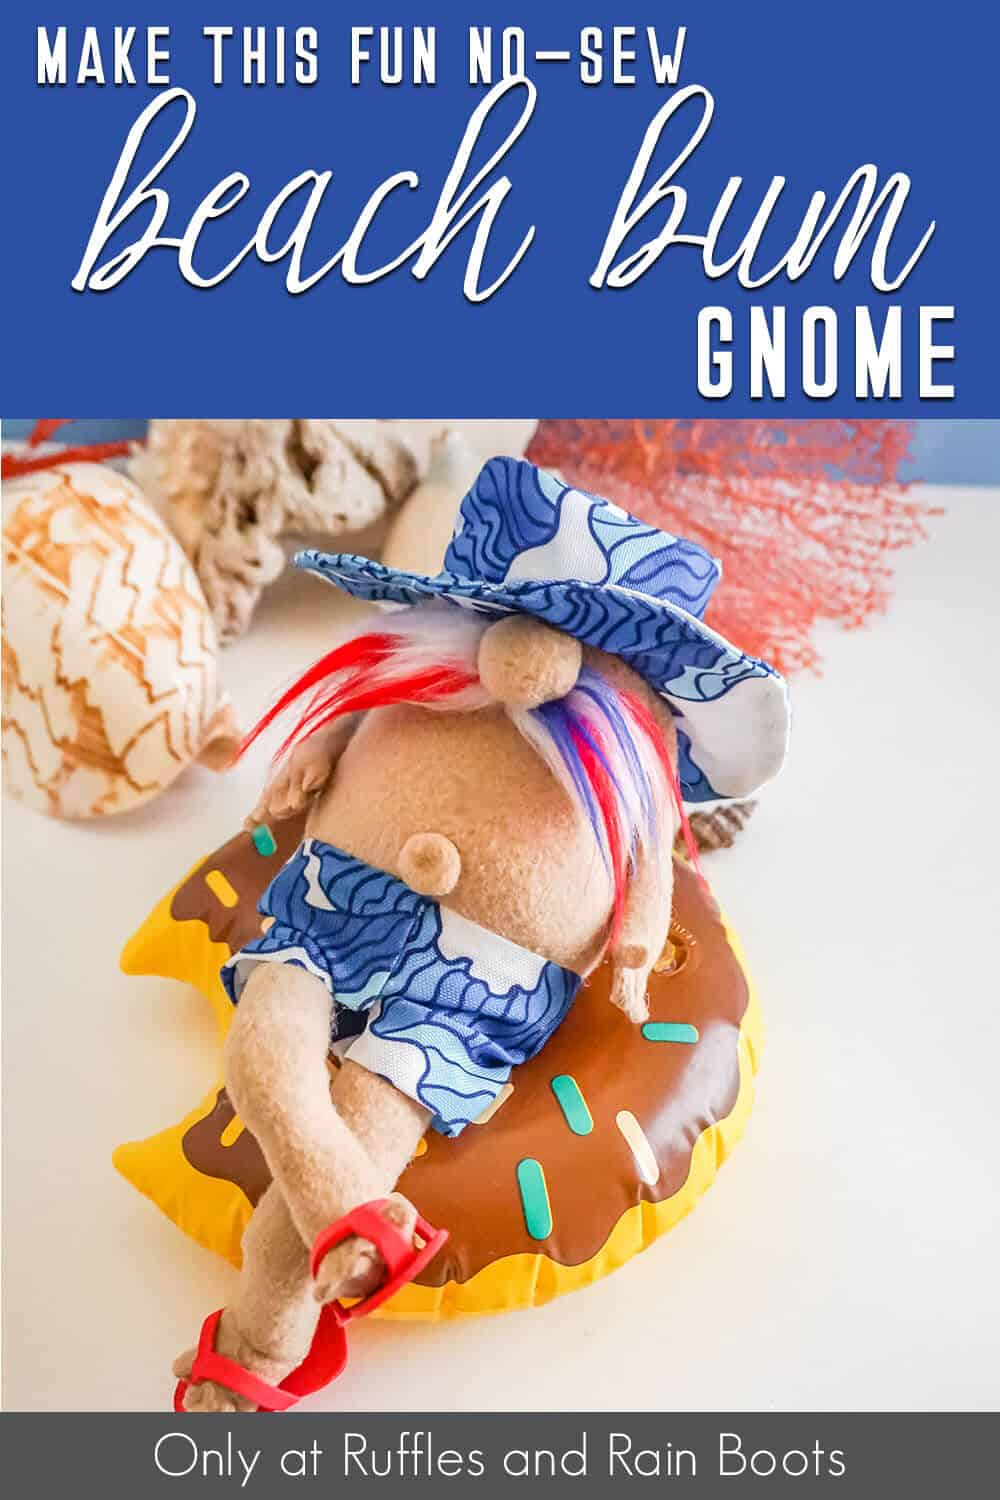 easy no-sew pool floatie gnome pattern with text which reads make this fun no-sew beach bum gnome